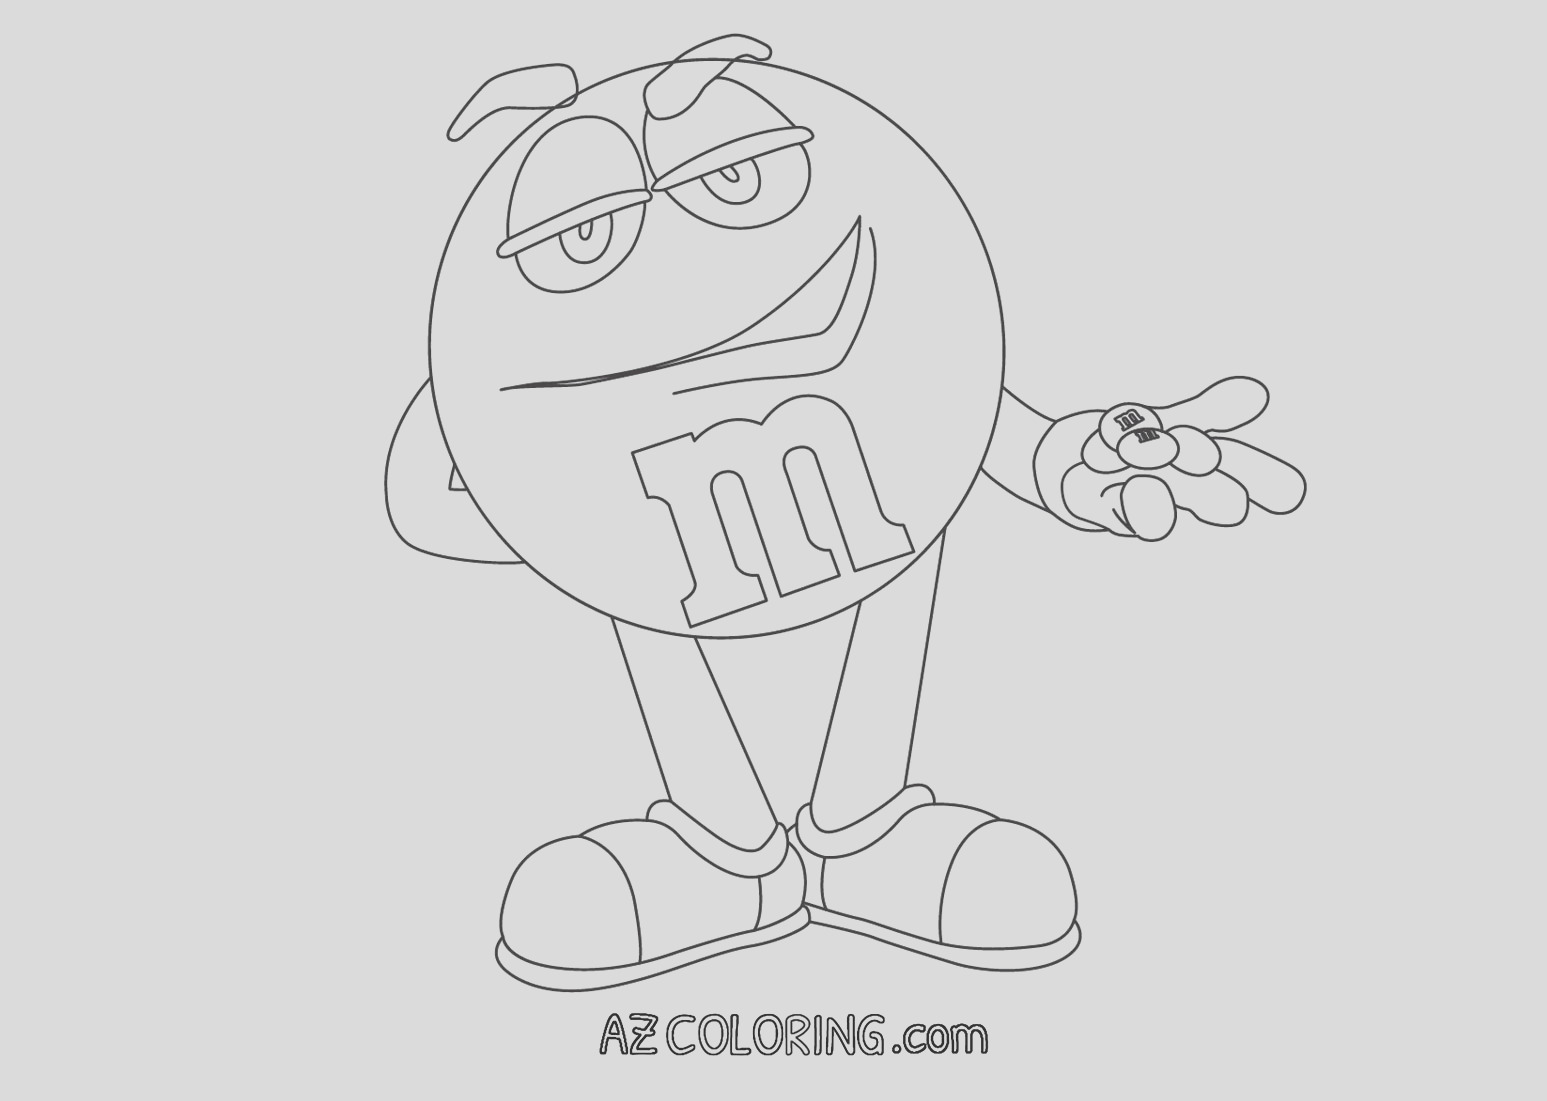 mm coloring page